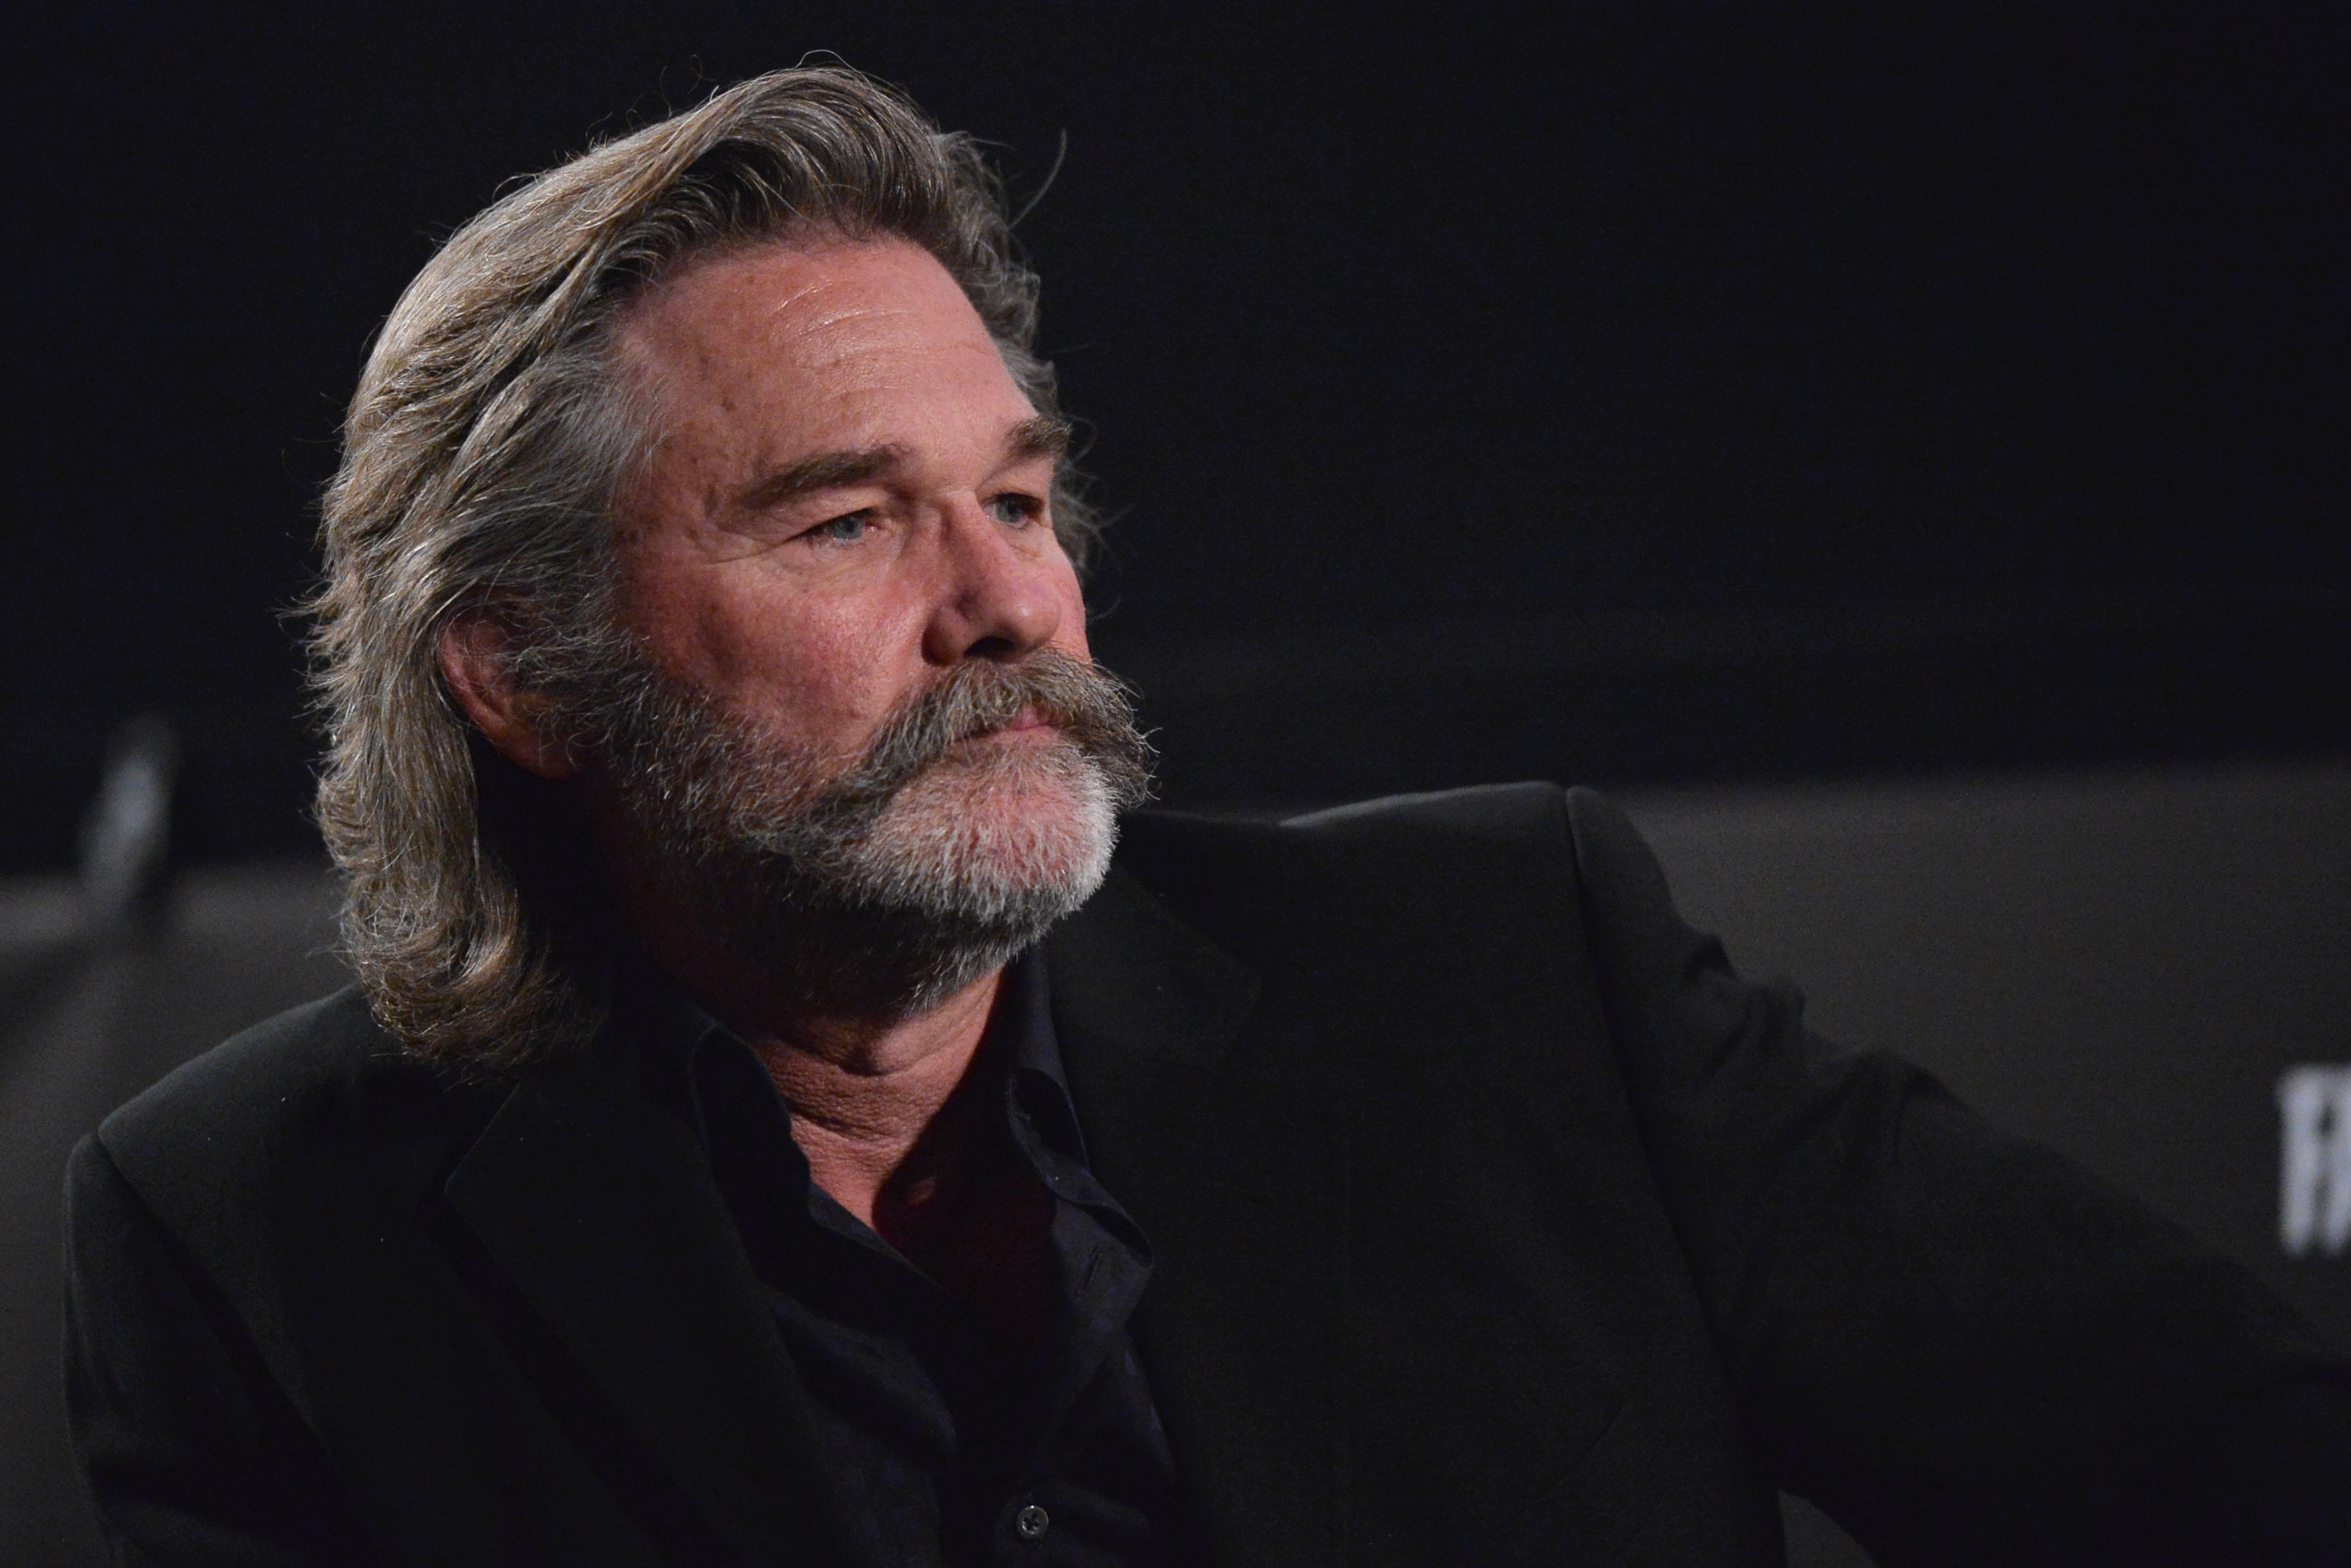 Is Kurt Russell joining Guardians Of The Galaxy 2? Please say Kurt Russell is joining Guardians Of The Galaxy 2